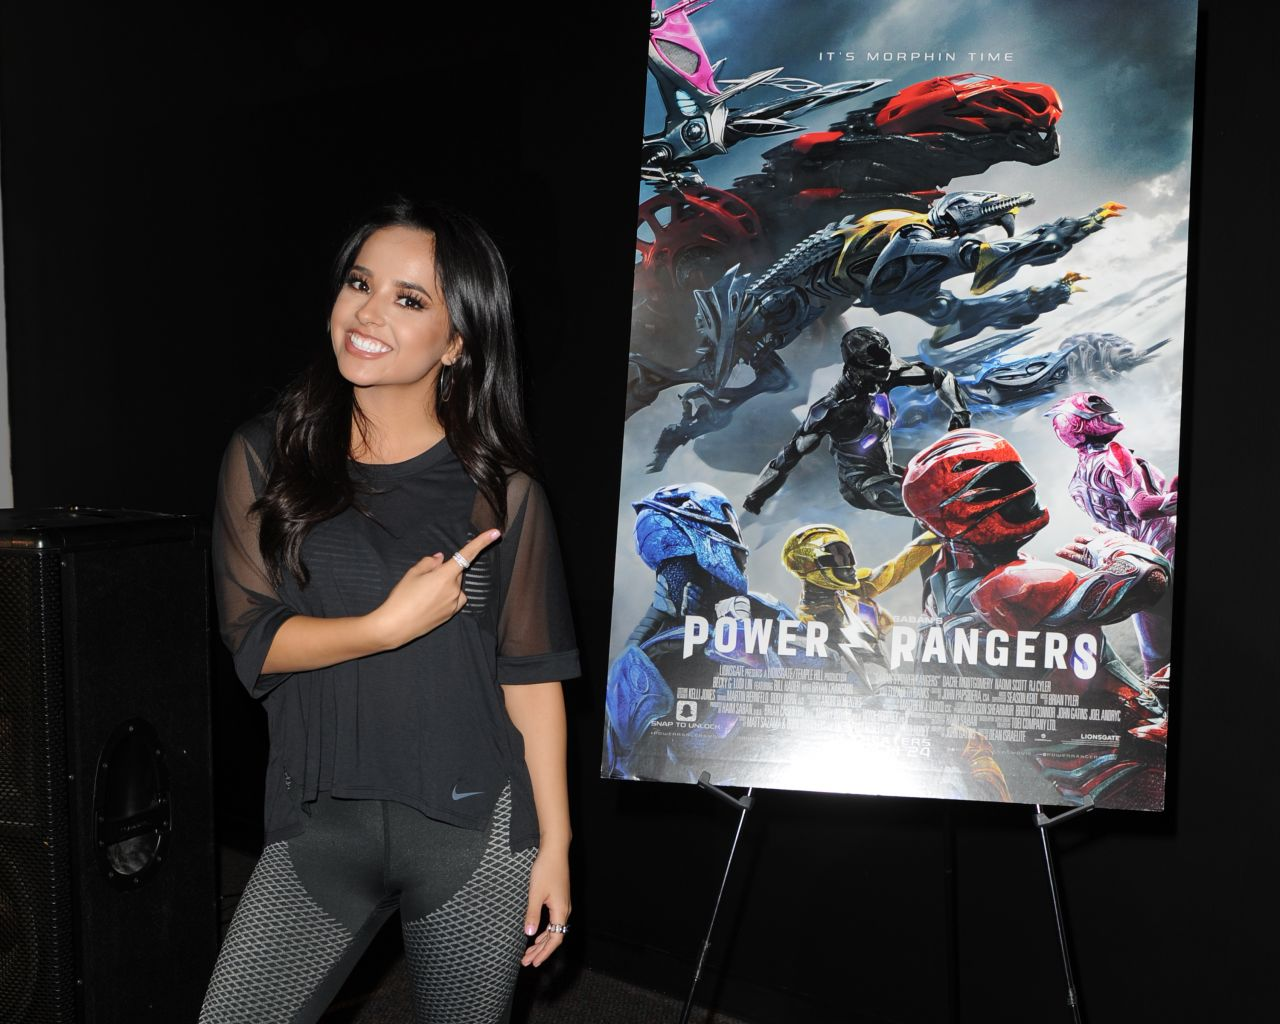 Becky G - Power Rangers Fan Event at IHeartRadio Station Y100 in